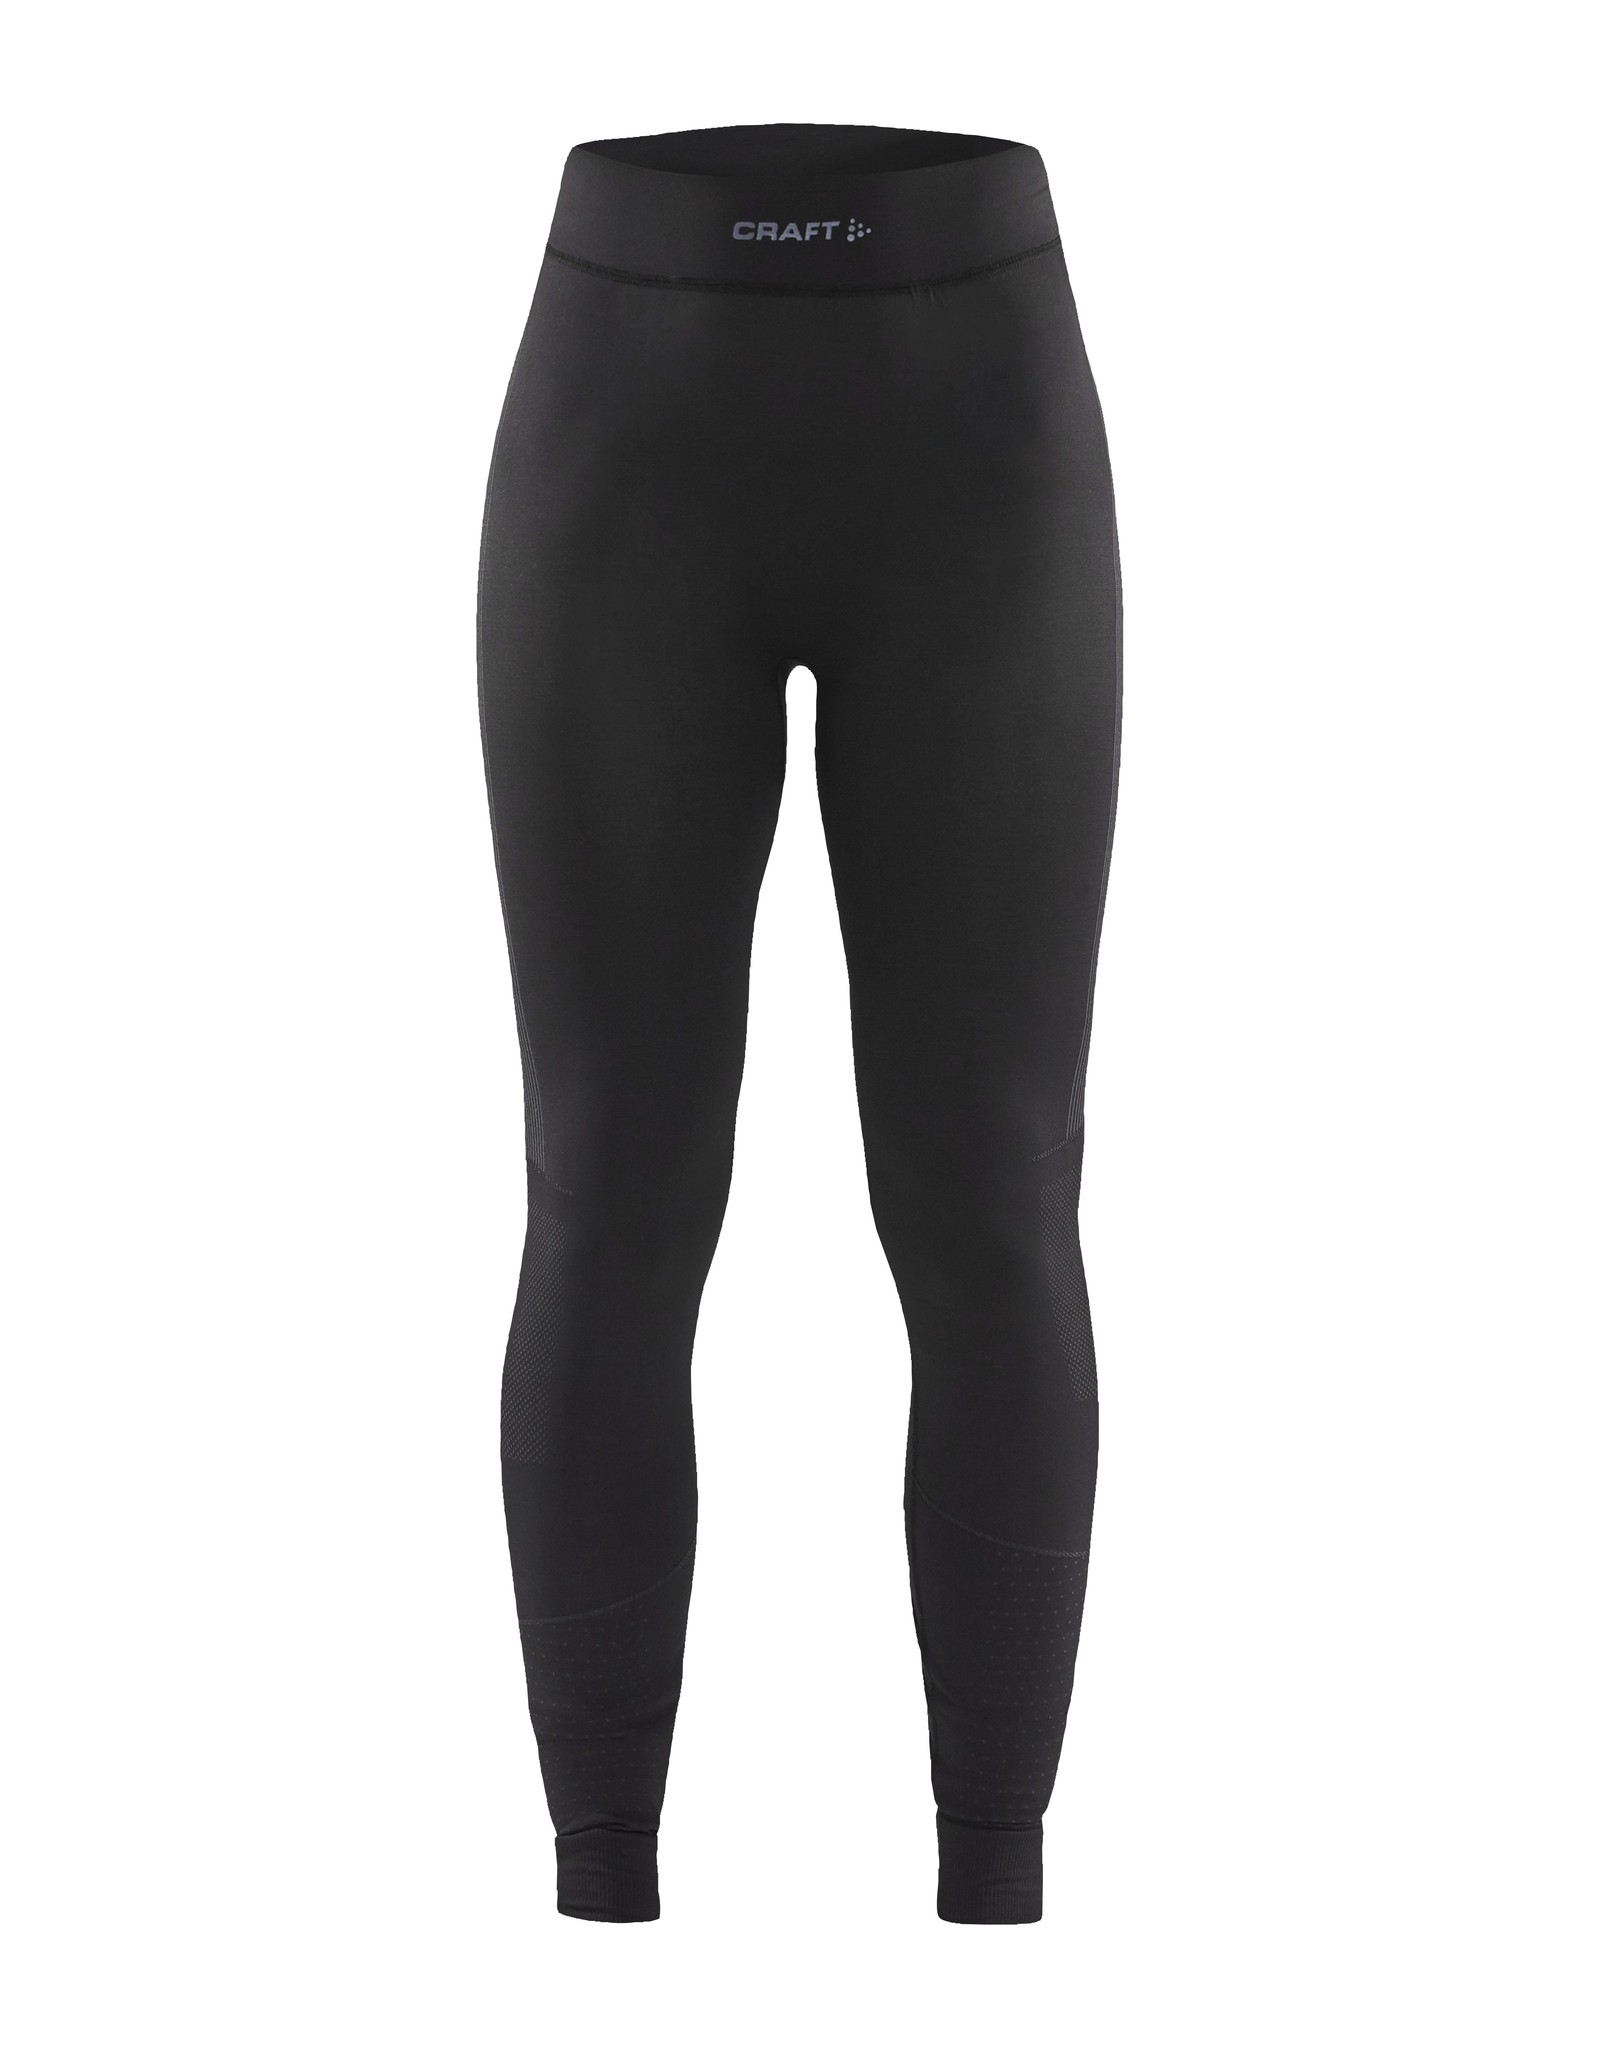 Craft Women's Active Intensity Pants